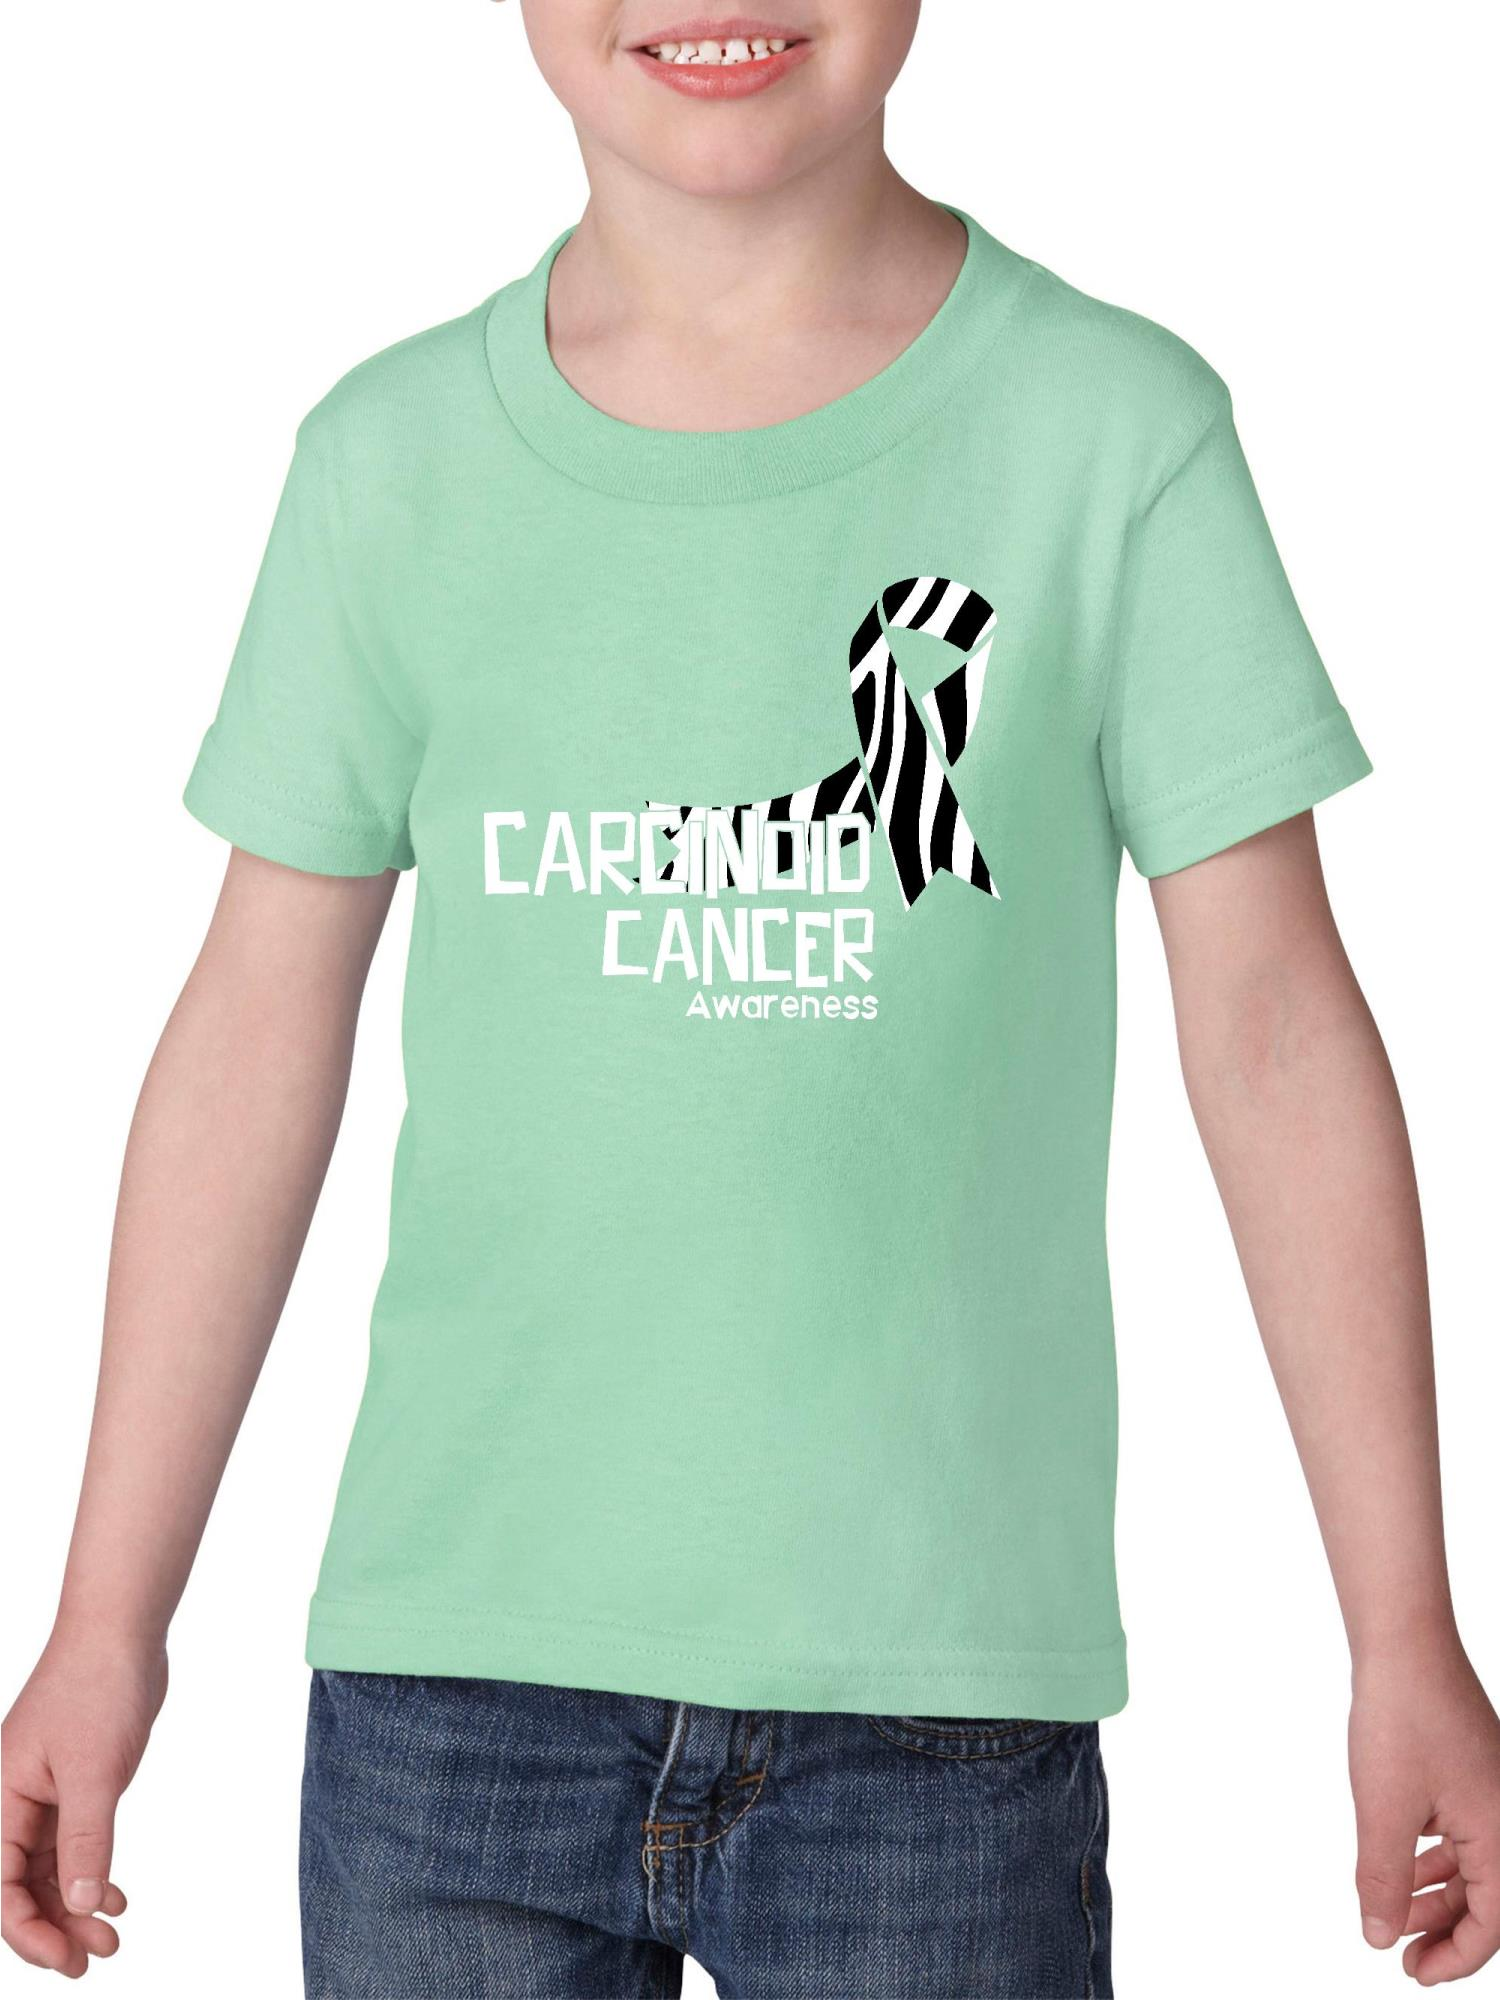 Carcinoid Cancer Awareness Heavy Cotton Toddler Kids T-Shirt Tee Clothing